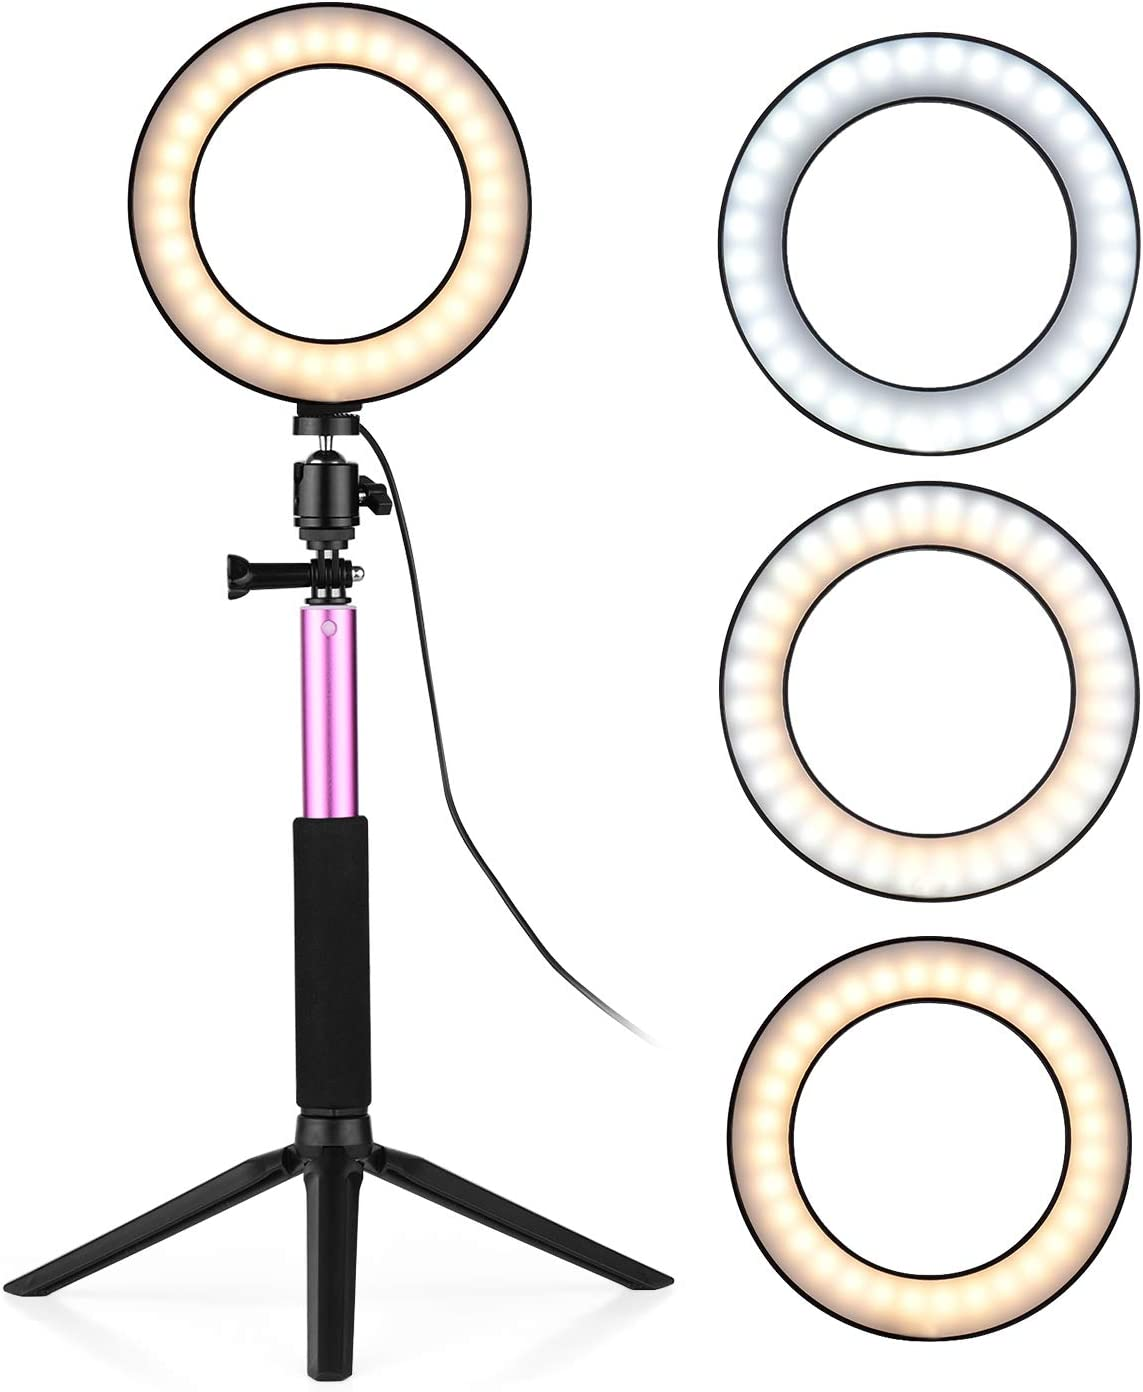 Andoer Ring Light with Stand, 6 Inch Selfie Lights Dimmable 3-Colors 360 Rotary USB Powered Streaming Light for Vlogging YouTube Video Shooting Make up (Pink)